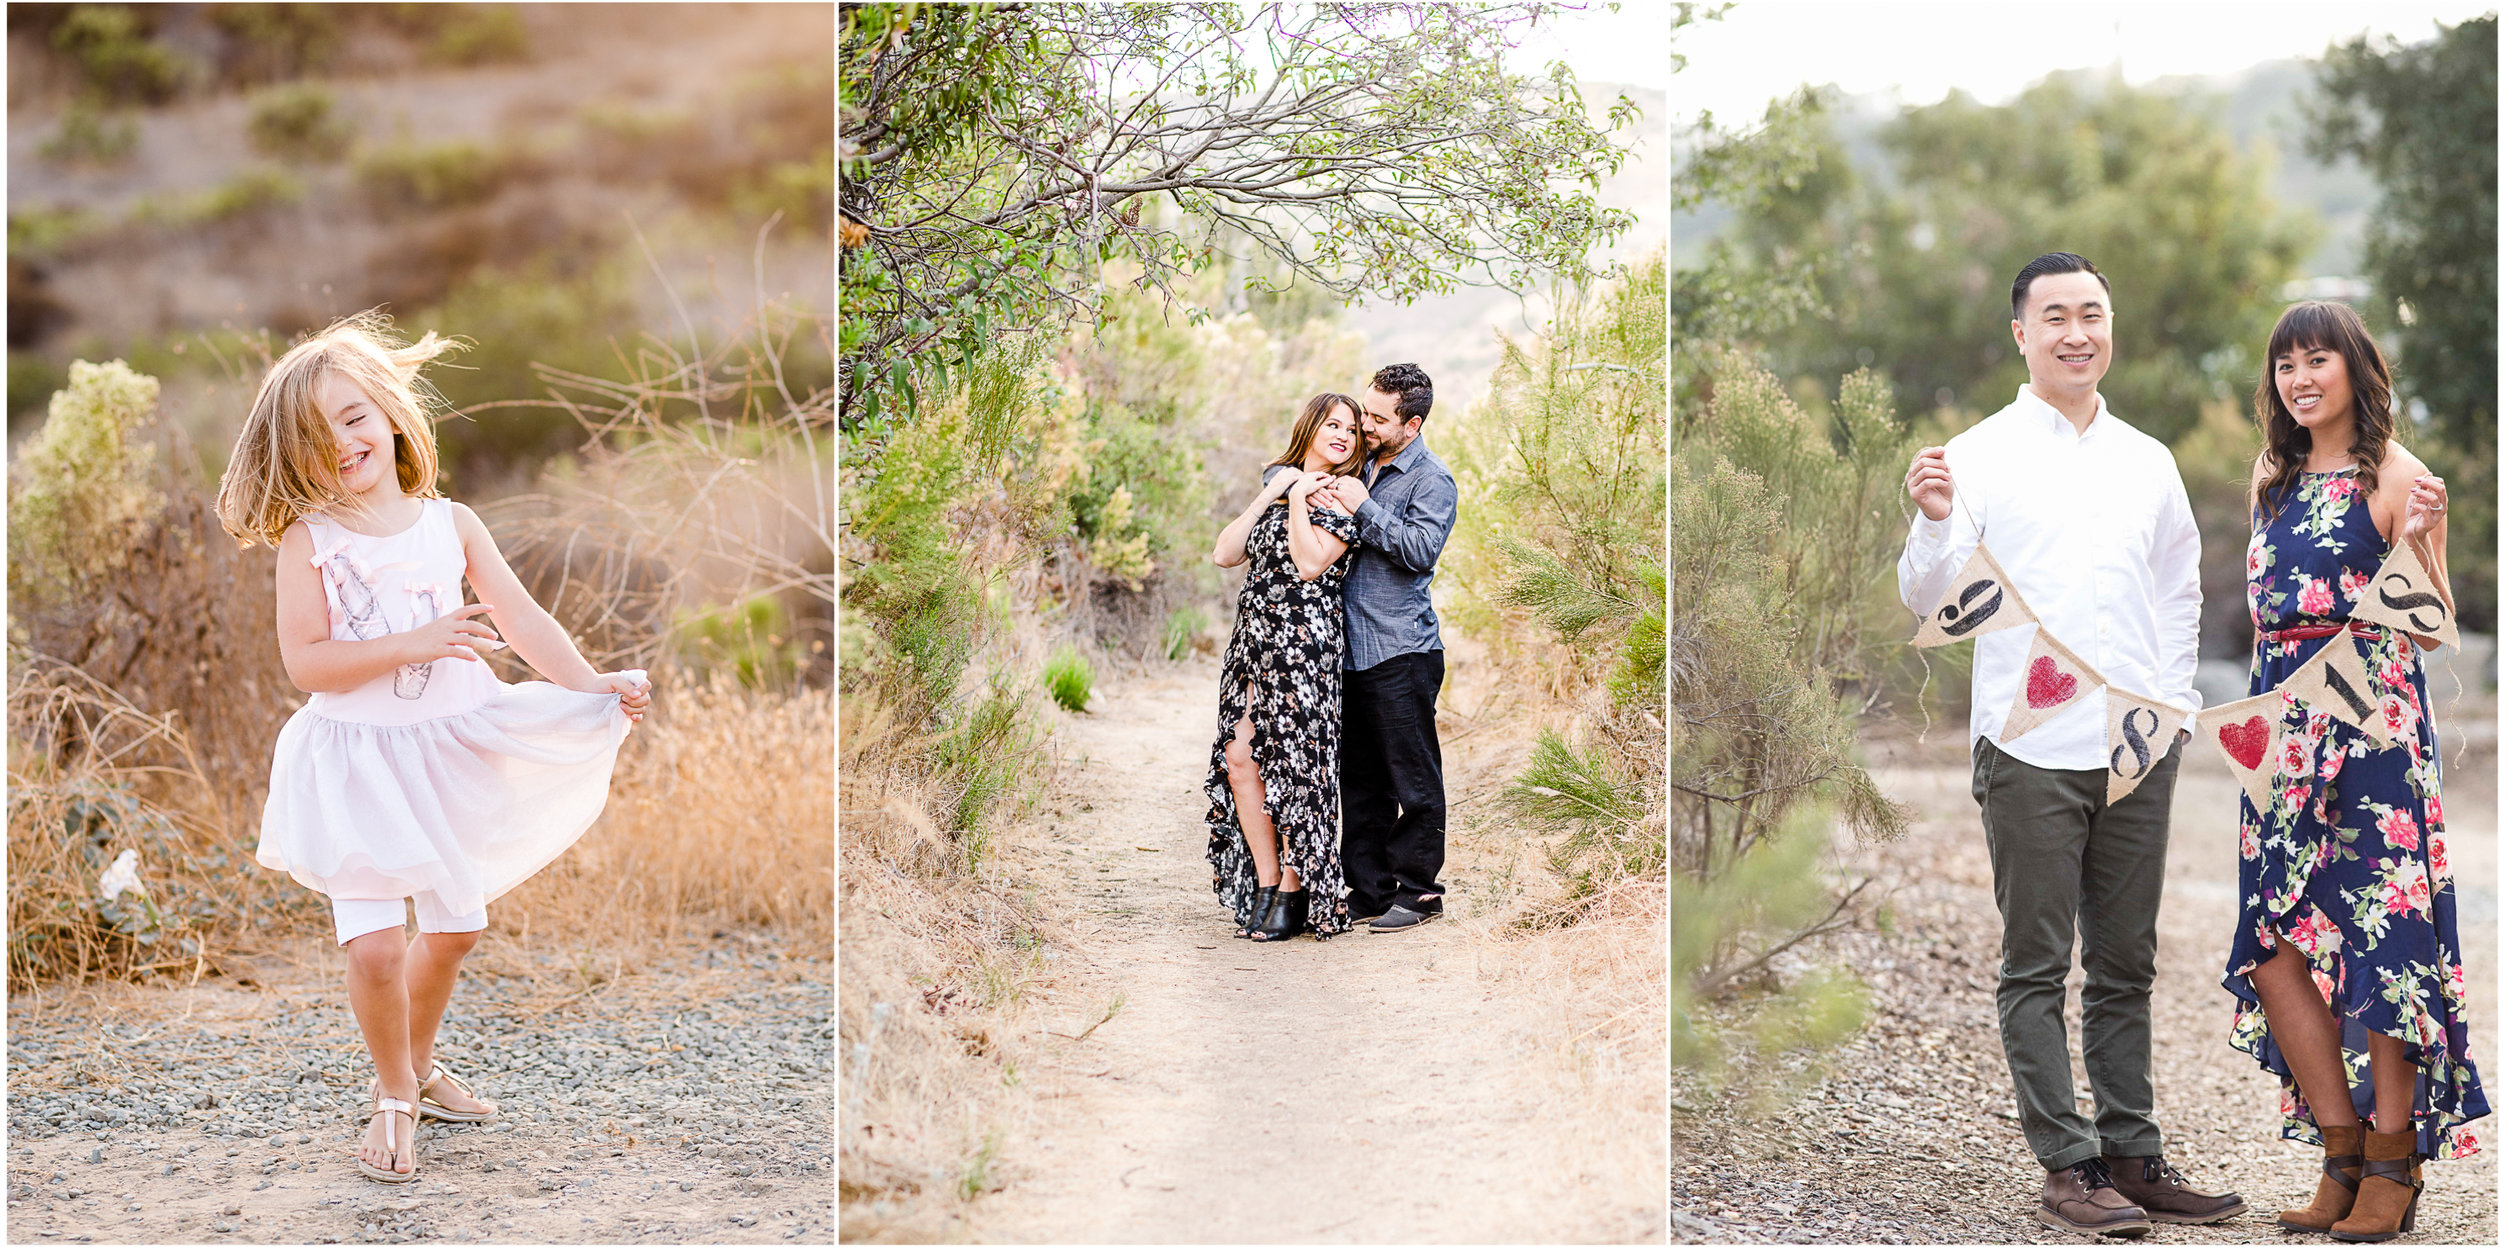 mission trails family photography 2.jpg